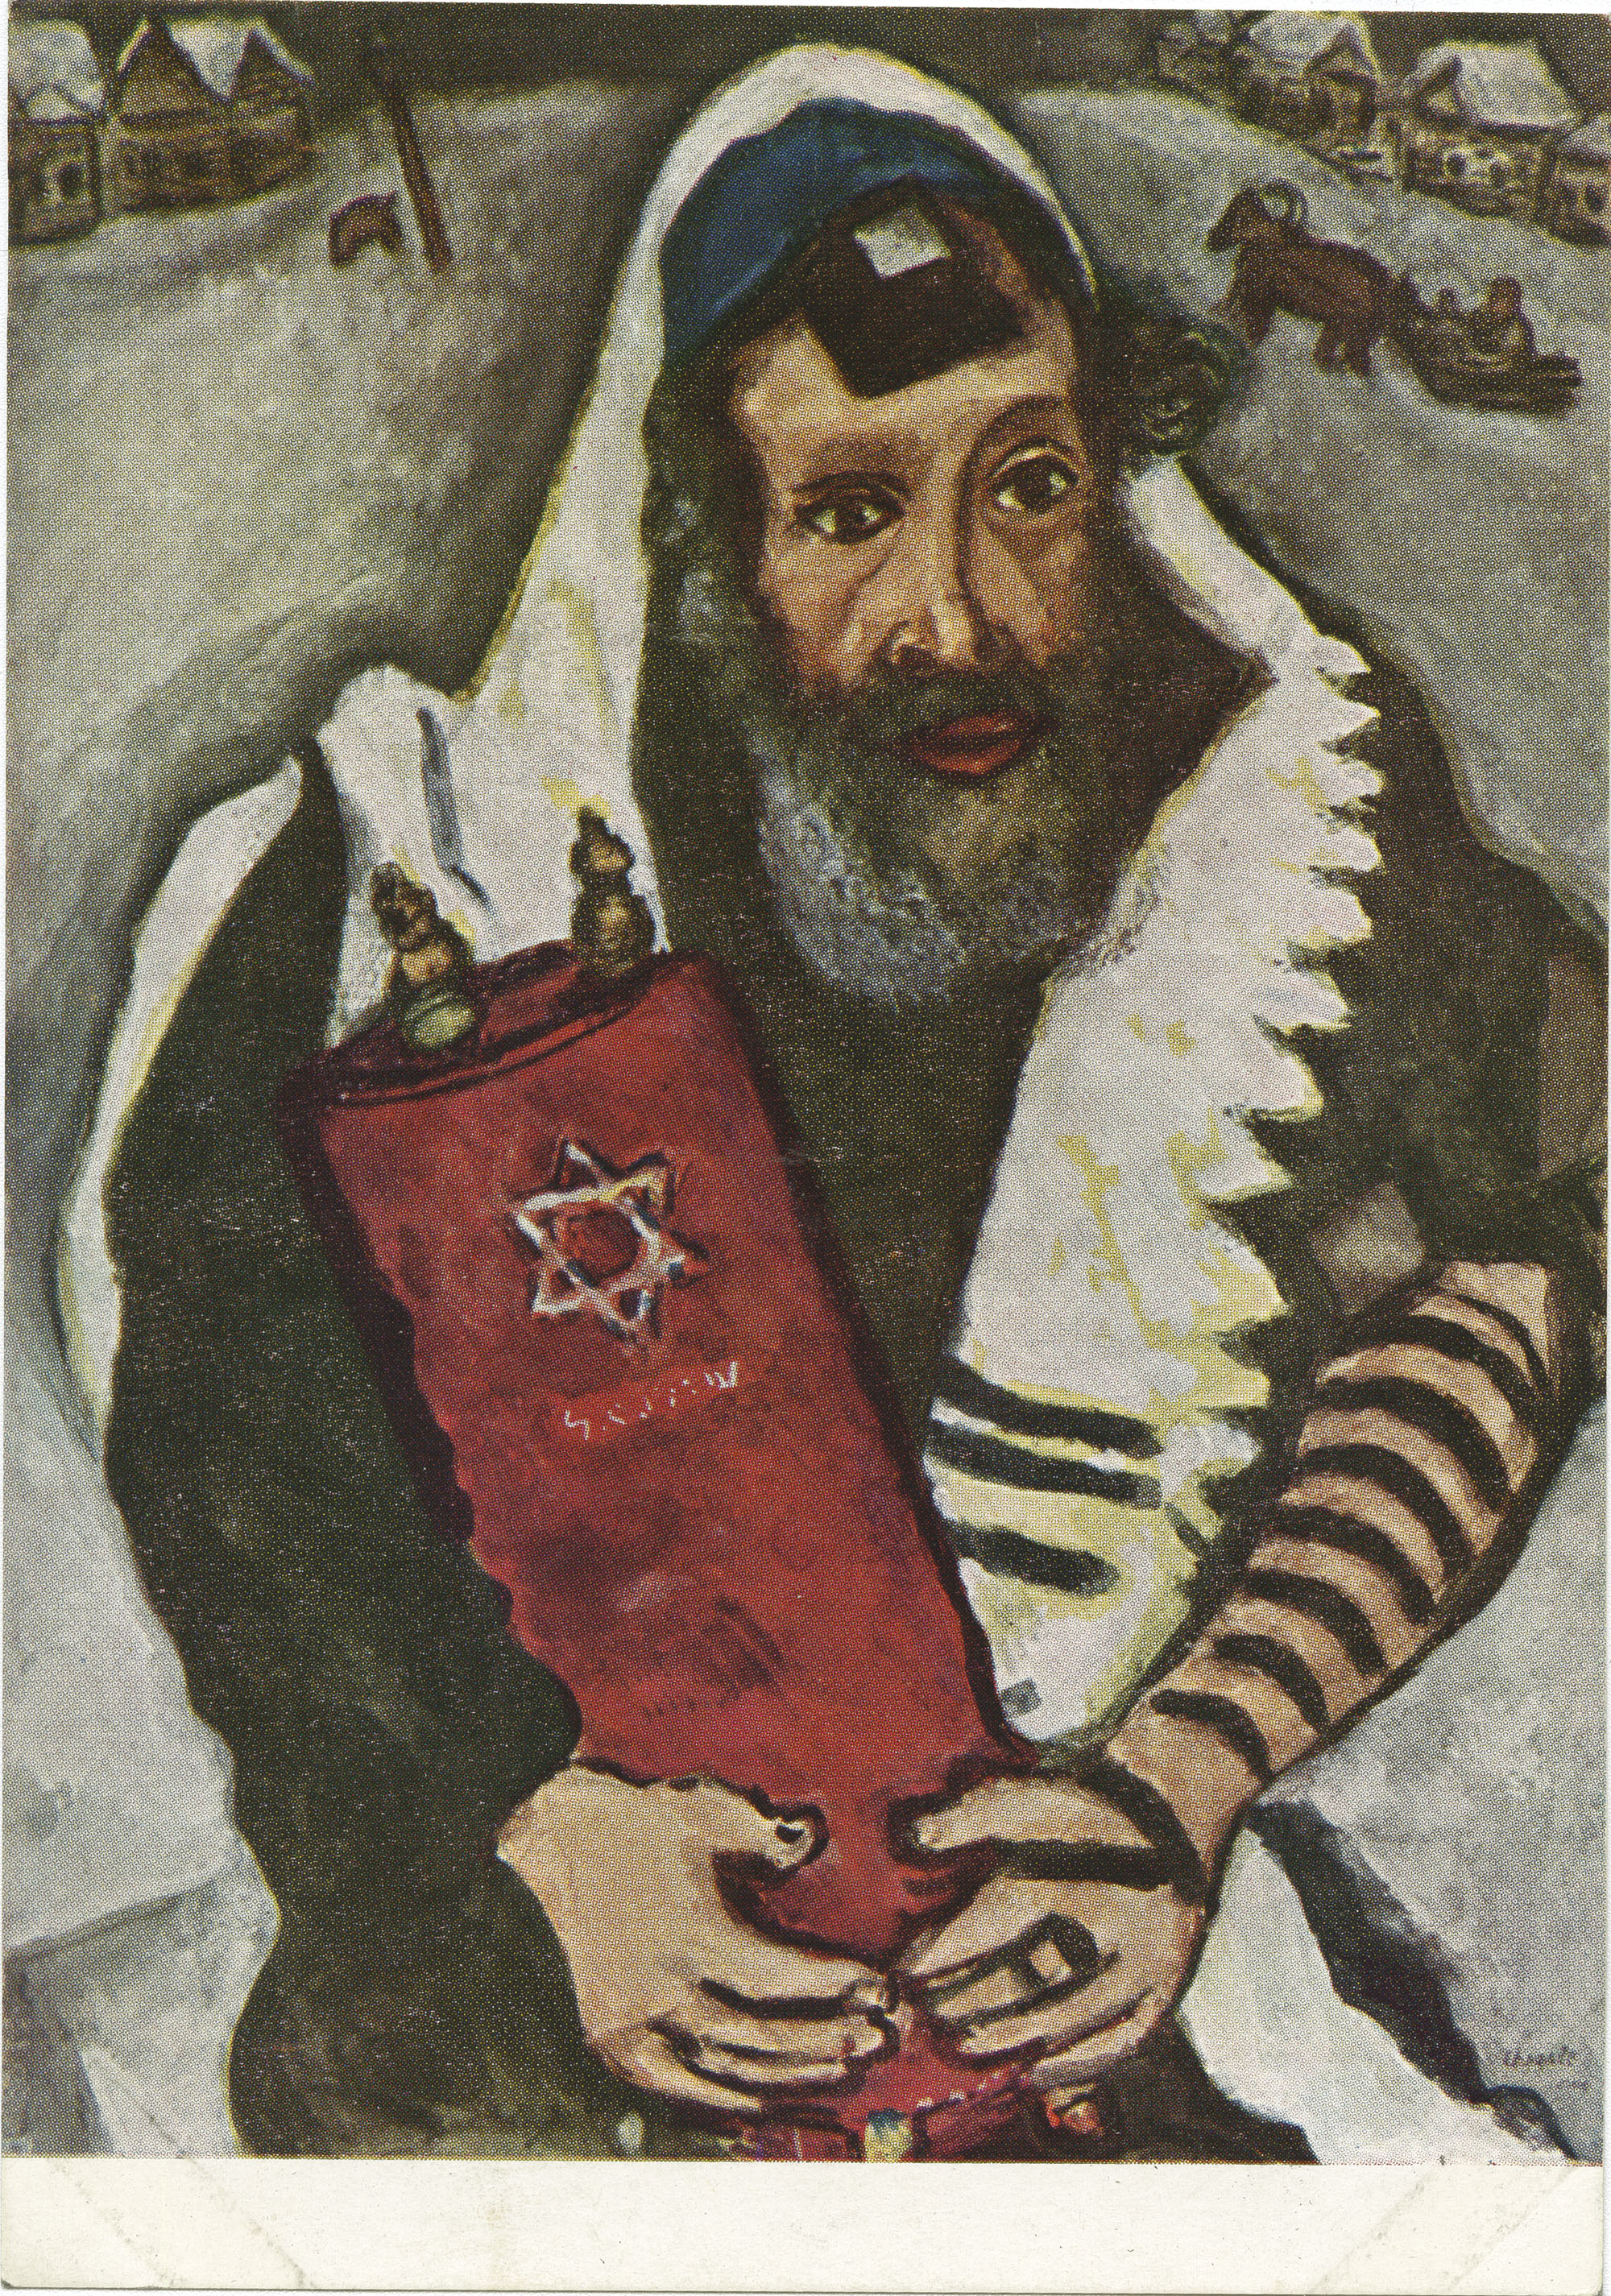 Marc Chagall, 1887. Rabbi met Wetsrol / Rabbi with Thora / Rabbin au  Rouleau de la Loi